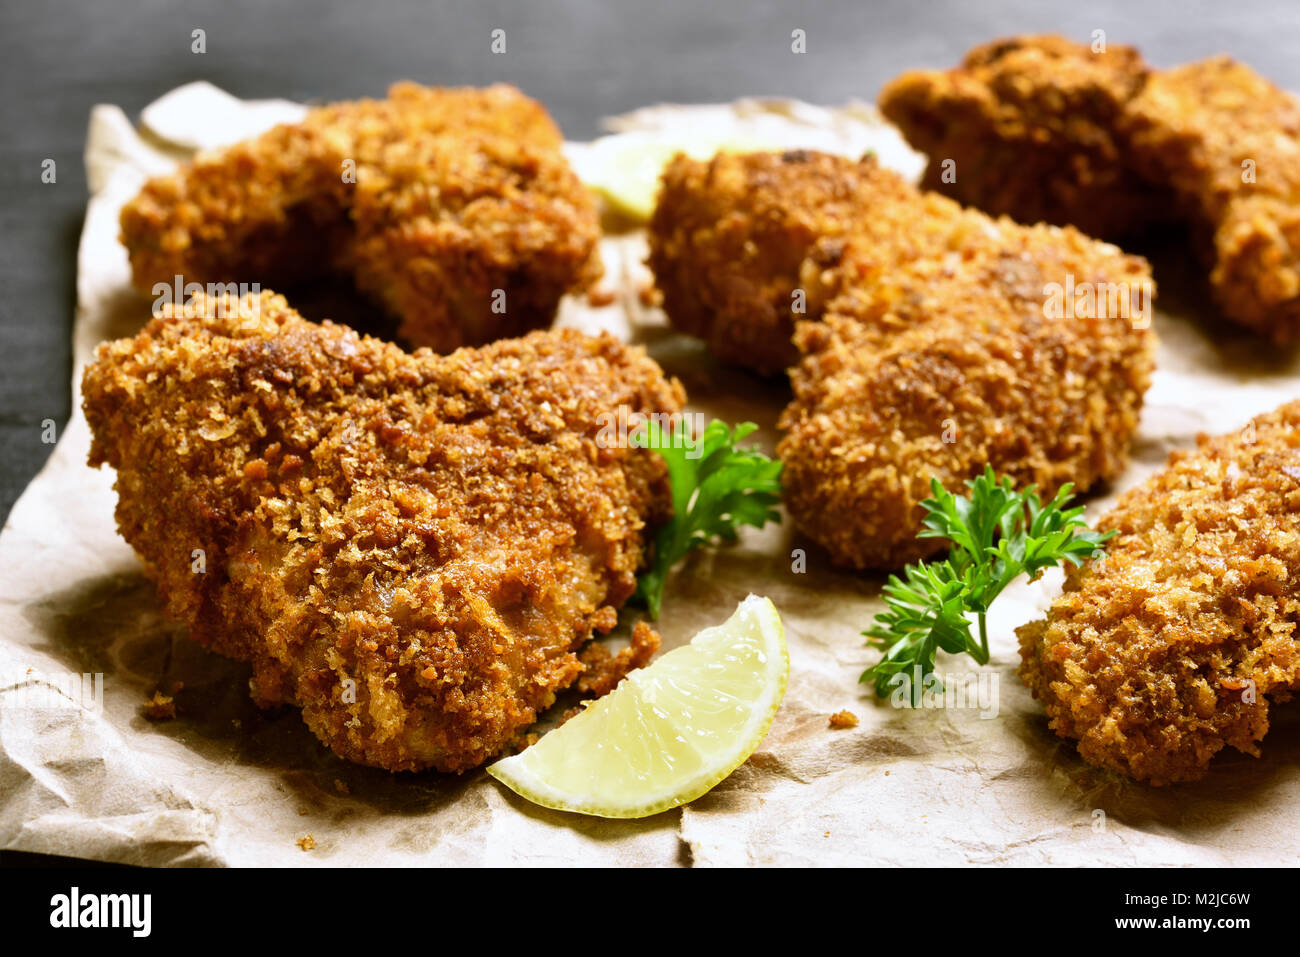 how to make deep fried breaded chicken wings